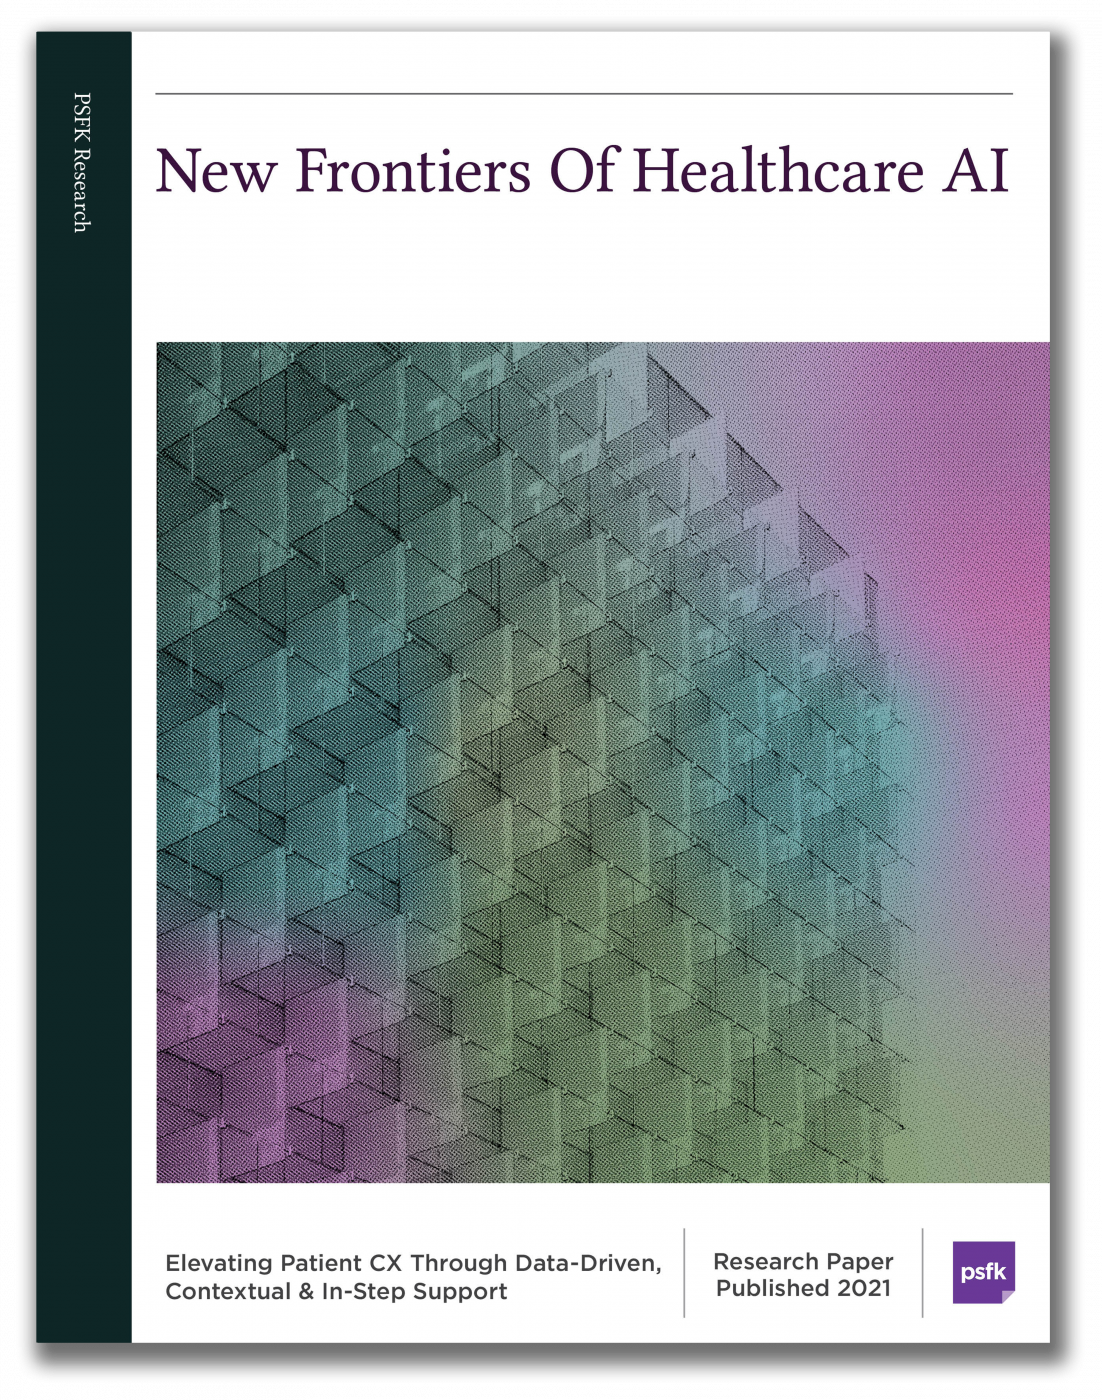 New Frontiers Of Healthcare AI